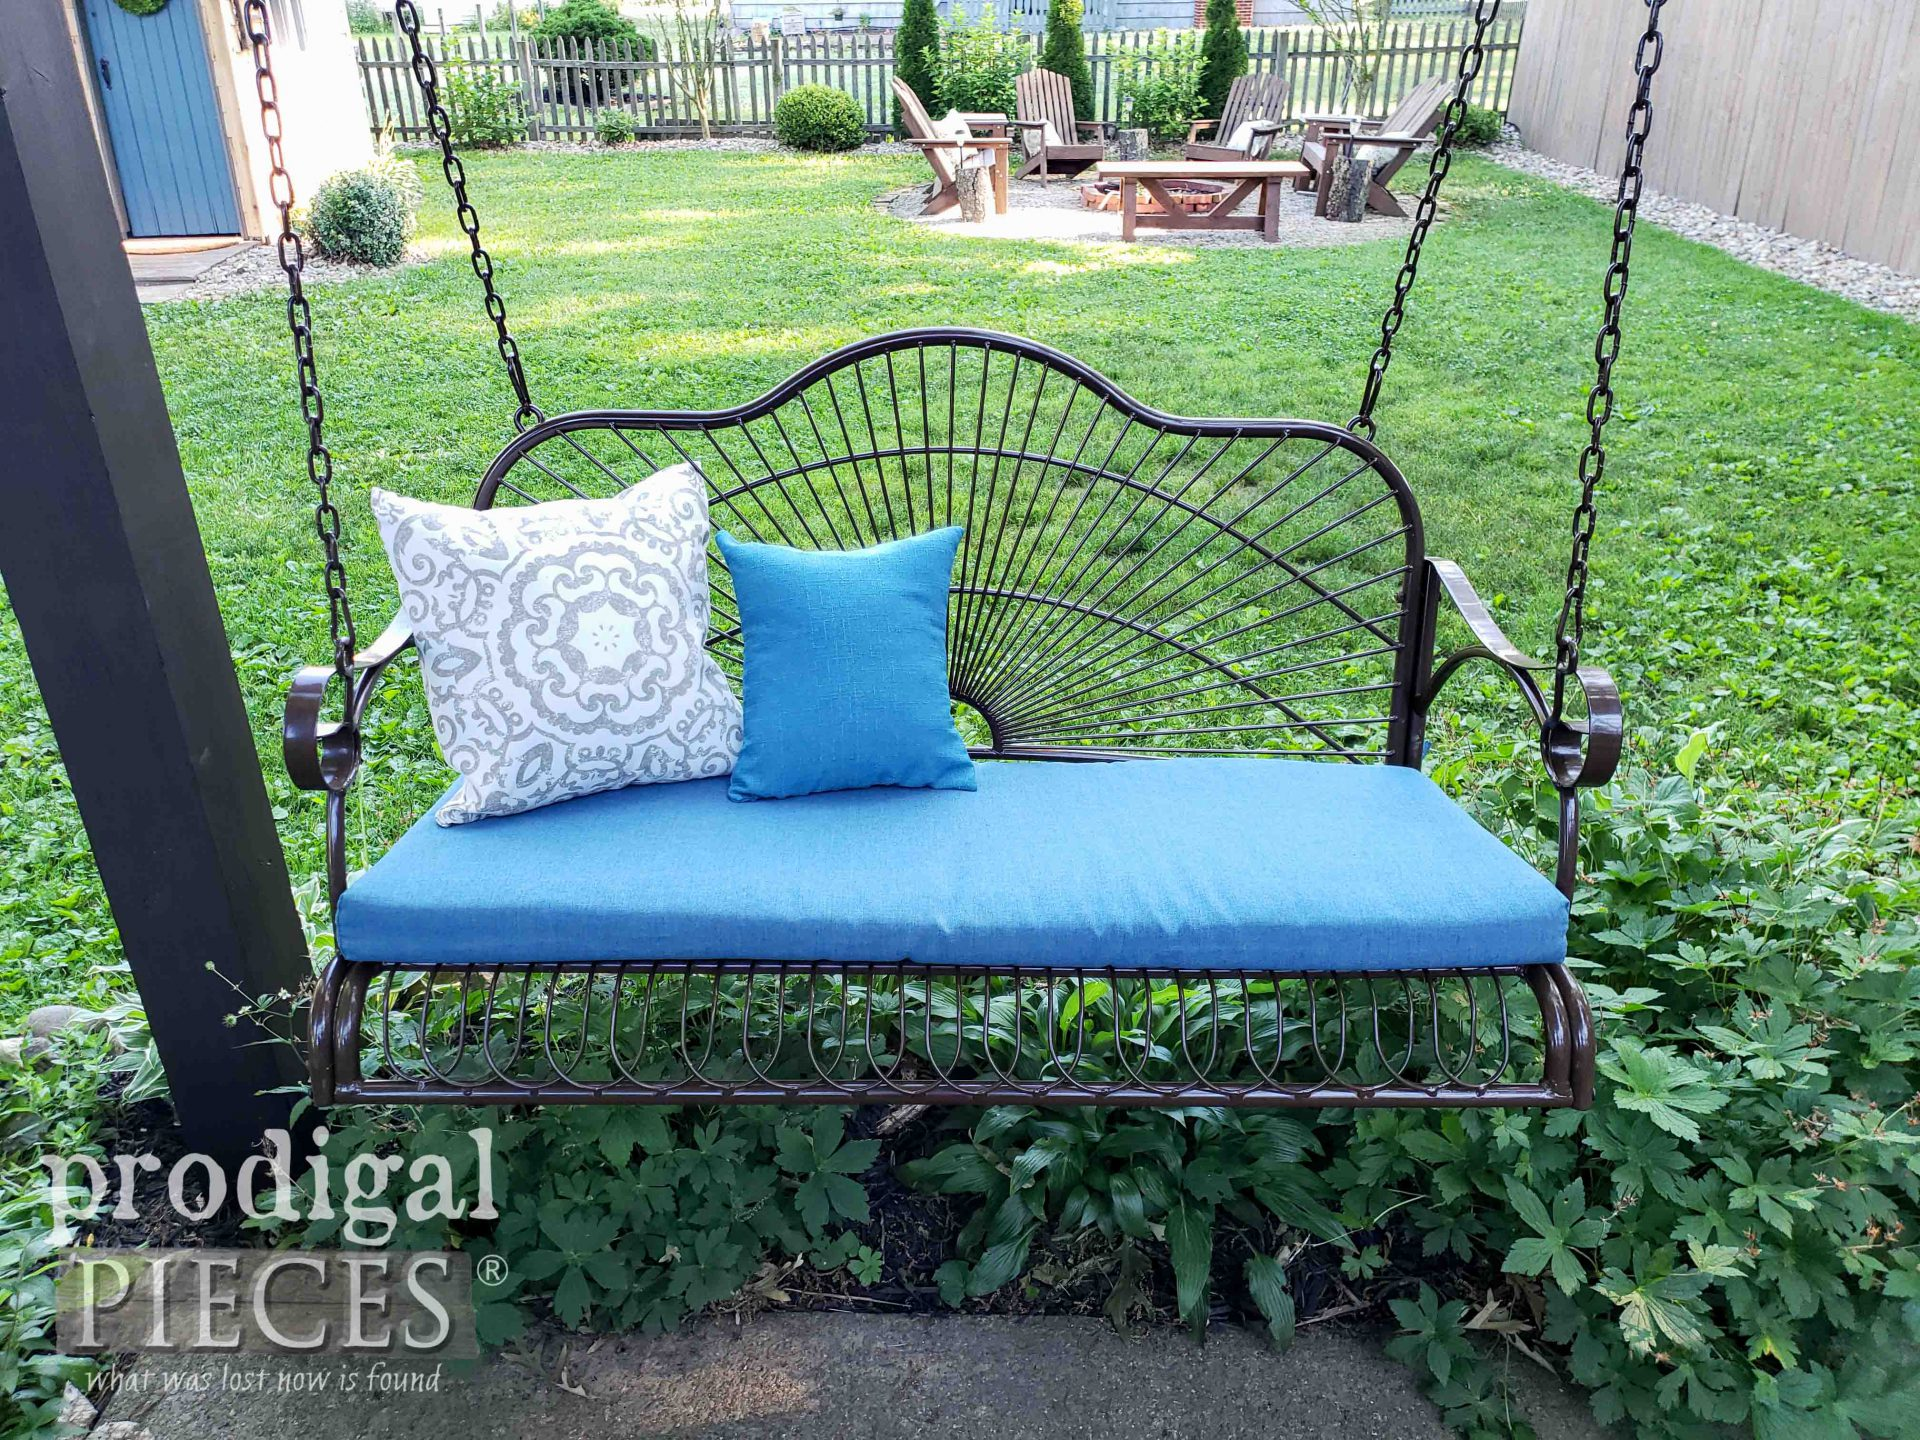 Metal Patio Swing for DIY Patio & Pergola Update by Prodigal Pieces | prodigalpieces.com #prodigalpieces #patio #home #homedecor #farmhouse #garden